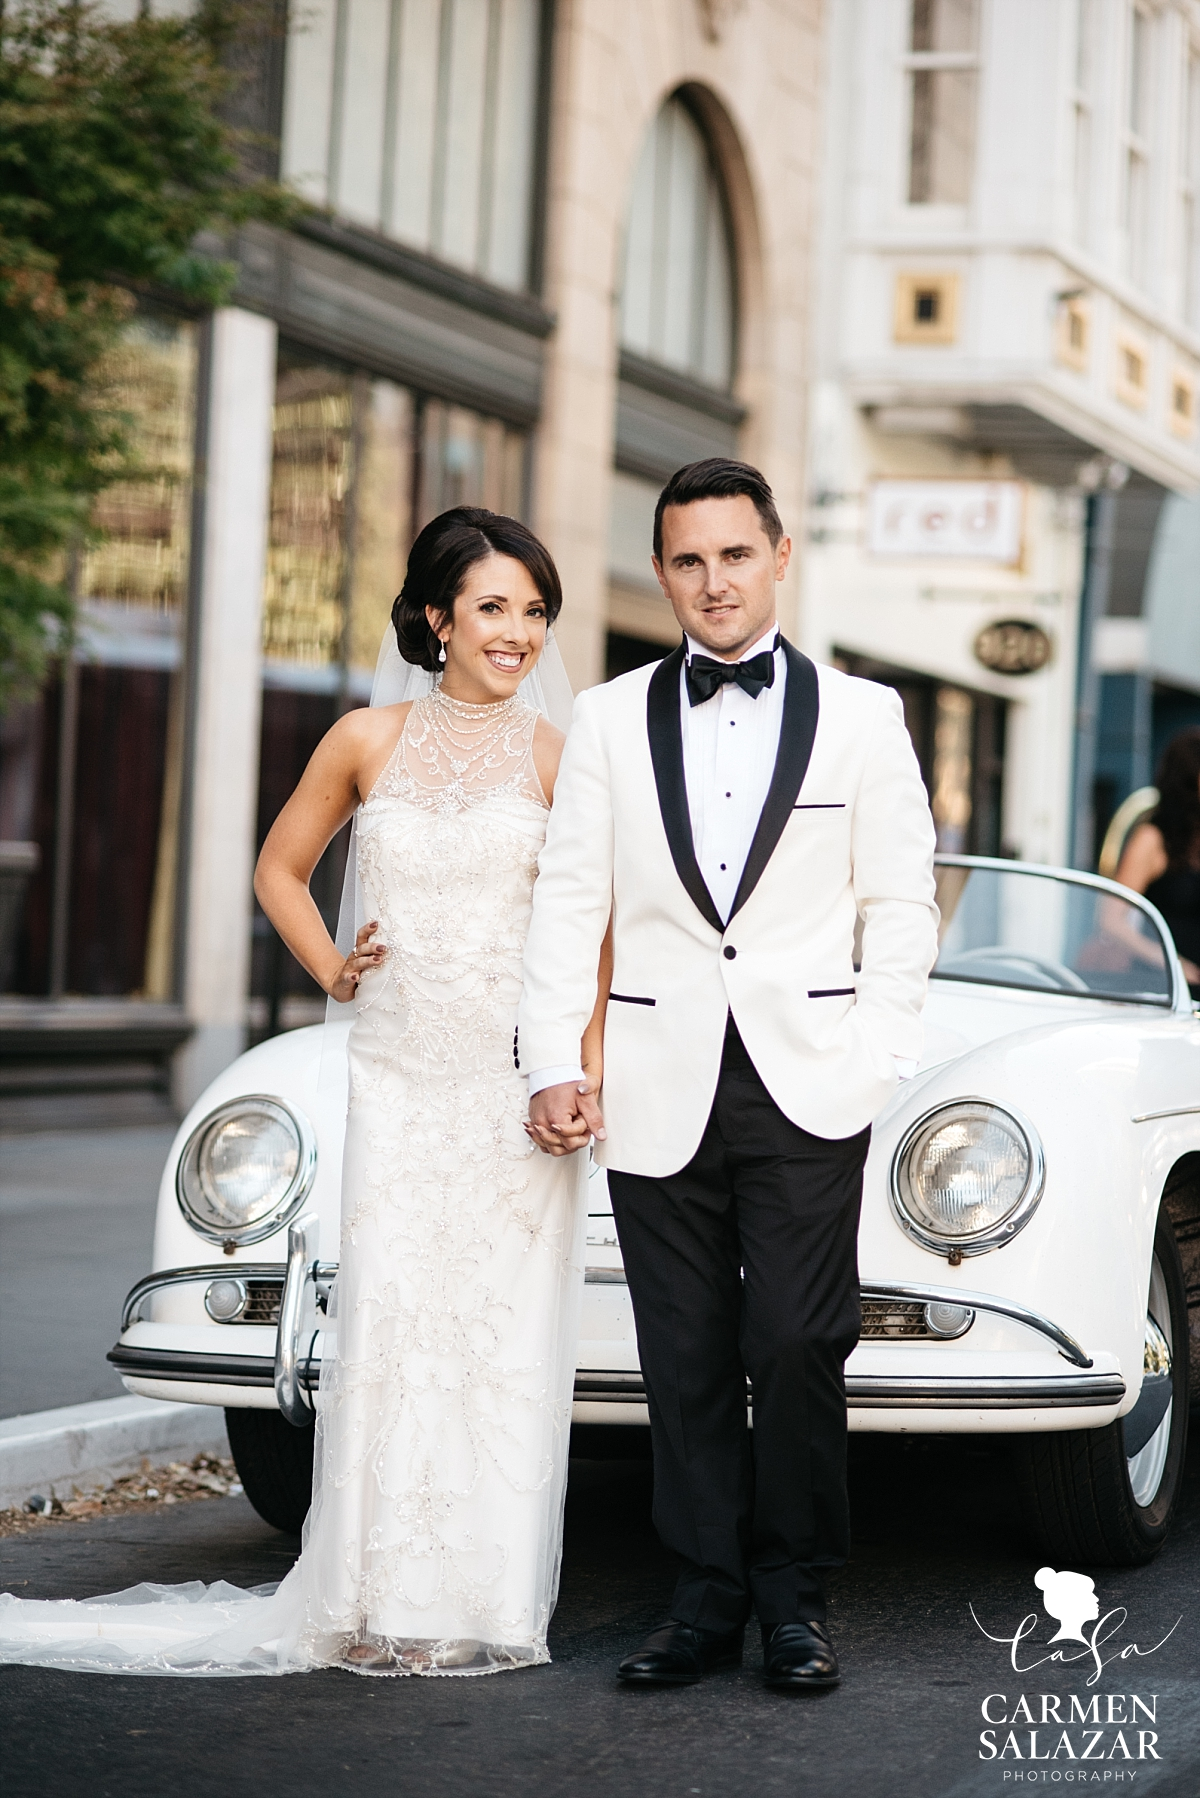 Classic style bride and groom with Porsche - Carmen Salazar